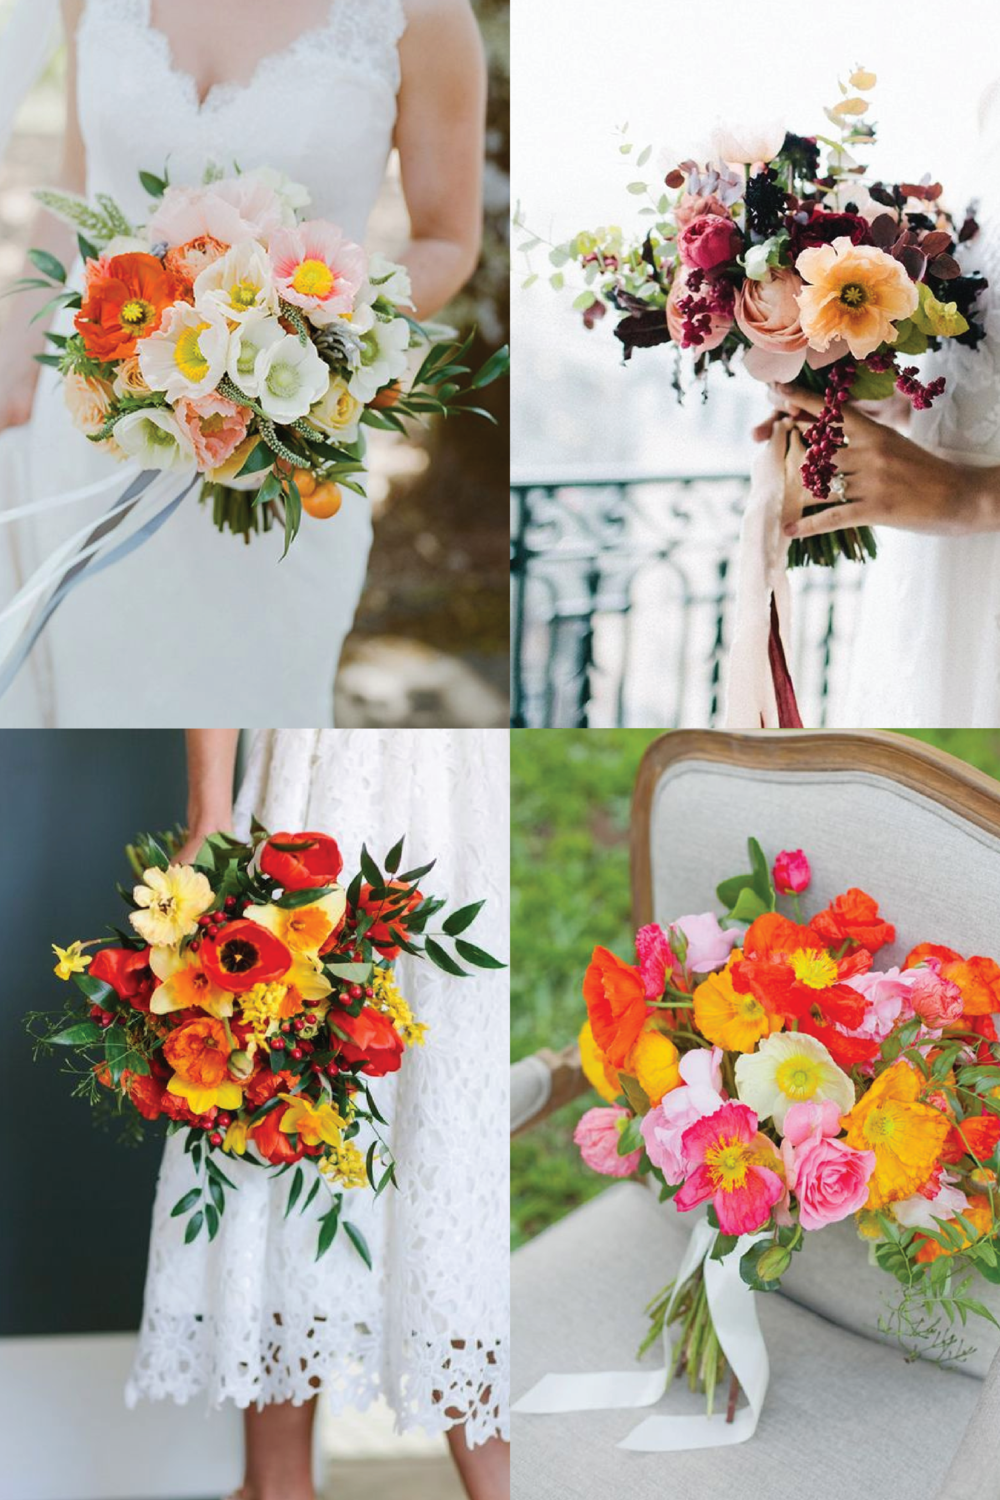 From clockwise, from top left: flowers by Alicia K Designs and photo by Christina McNeill; flowers by Lily Paloma and photo by Shannen Natasha; flowers by Calie Rose and photo by Mere Photo; flowers by Flower Talk and photo by Angela Higgin.